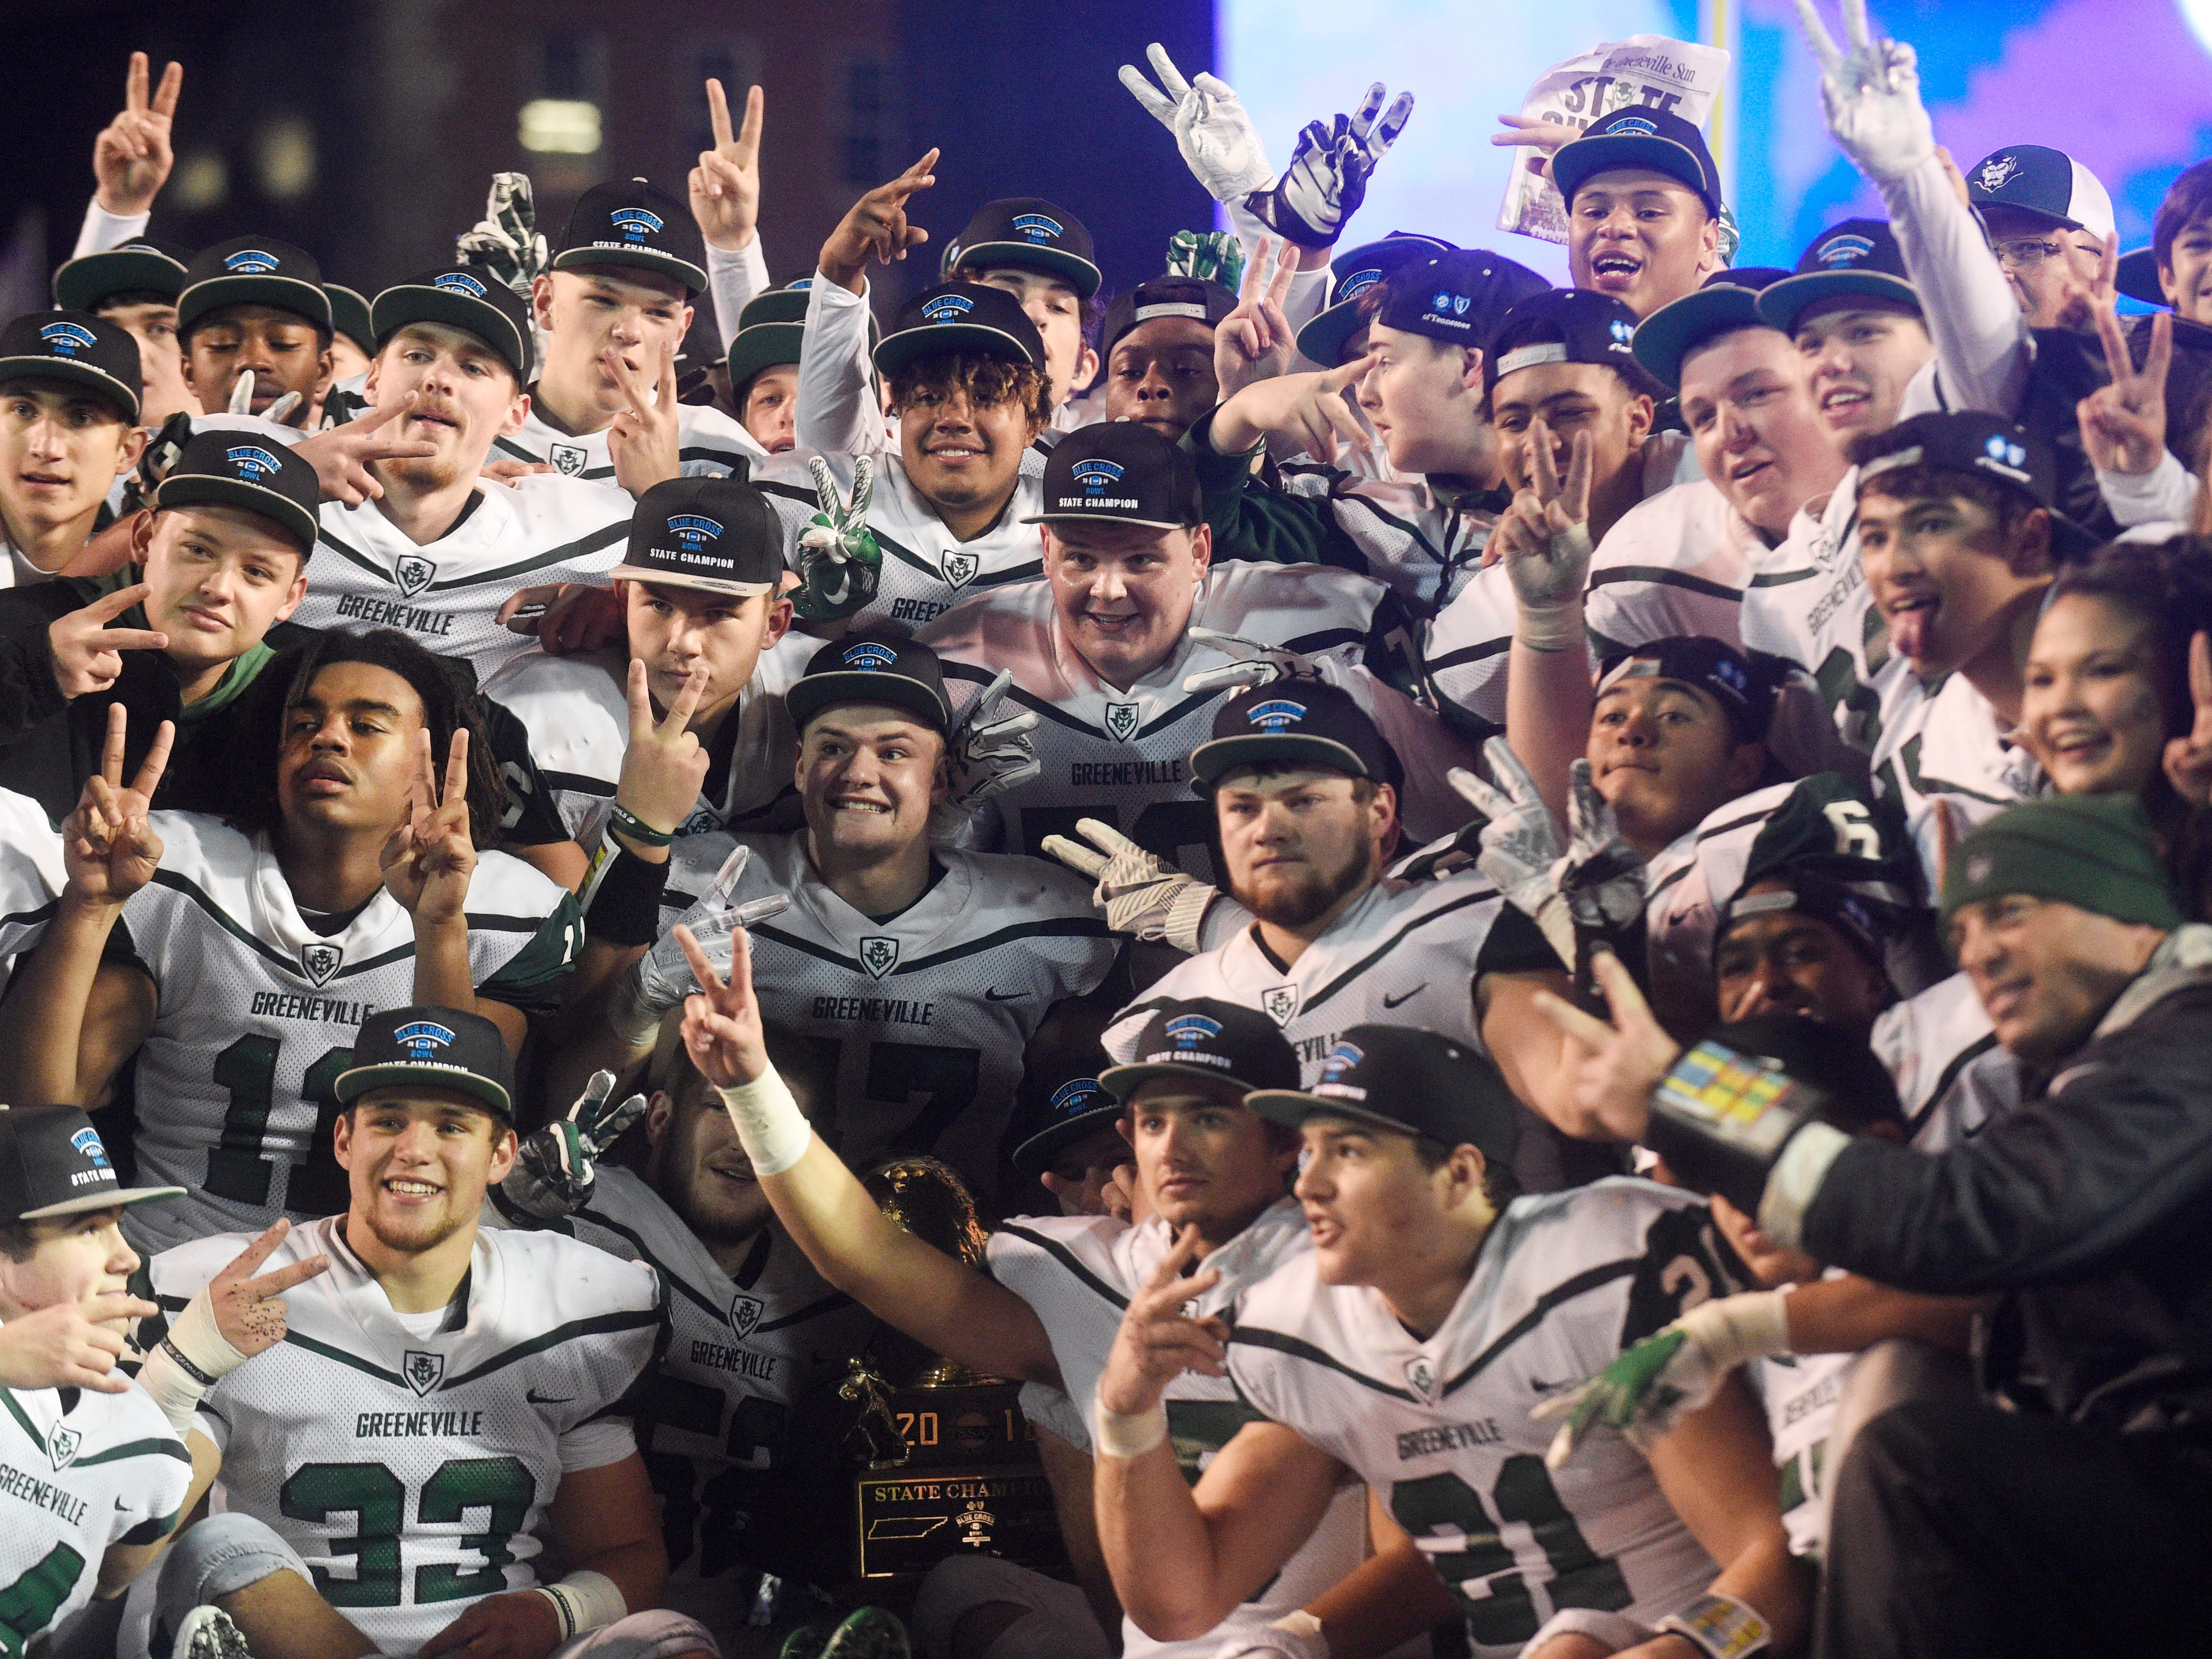 Greeneville celebrates its Class 4A BlueCross Bowl state championship at Tennessee Tech's Tucker Stadium in Cookeville, Tenn., on Thursday, Nov. 29, 2018.